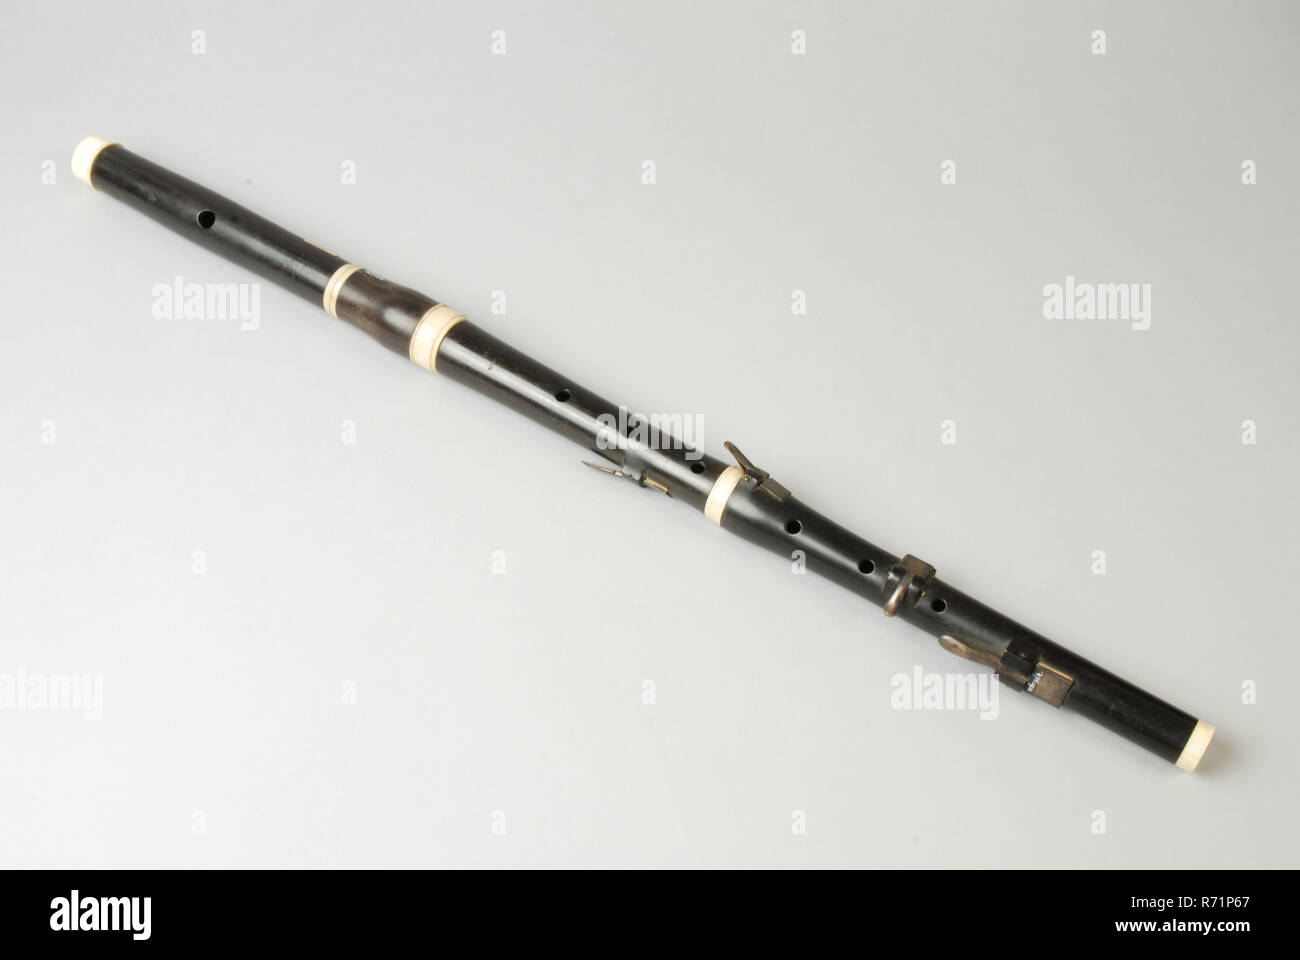 J. Mandt, Ebony flute in four parts, flute flute aerobic musical instrument acoustic wood ebony silver copper metal ivory, rotated drilled Wooden flute in four parts with ivory spacers The pedestal, has six tonalities, three of which are provided with silver flap: the flap at the bottom of the other two probably for half-tone distances The middle part, has four tone holes: three for the fingers plus tonal hole with flap Between the center piece and the mouth piece an extra piece is fitted without tone holes connecting the nozzle piece. The flute is marked on mouthpiece (C) and middle piece, Ma - Stock Image